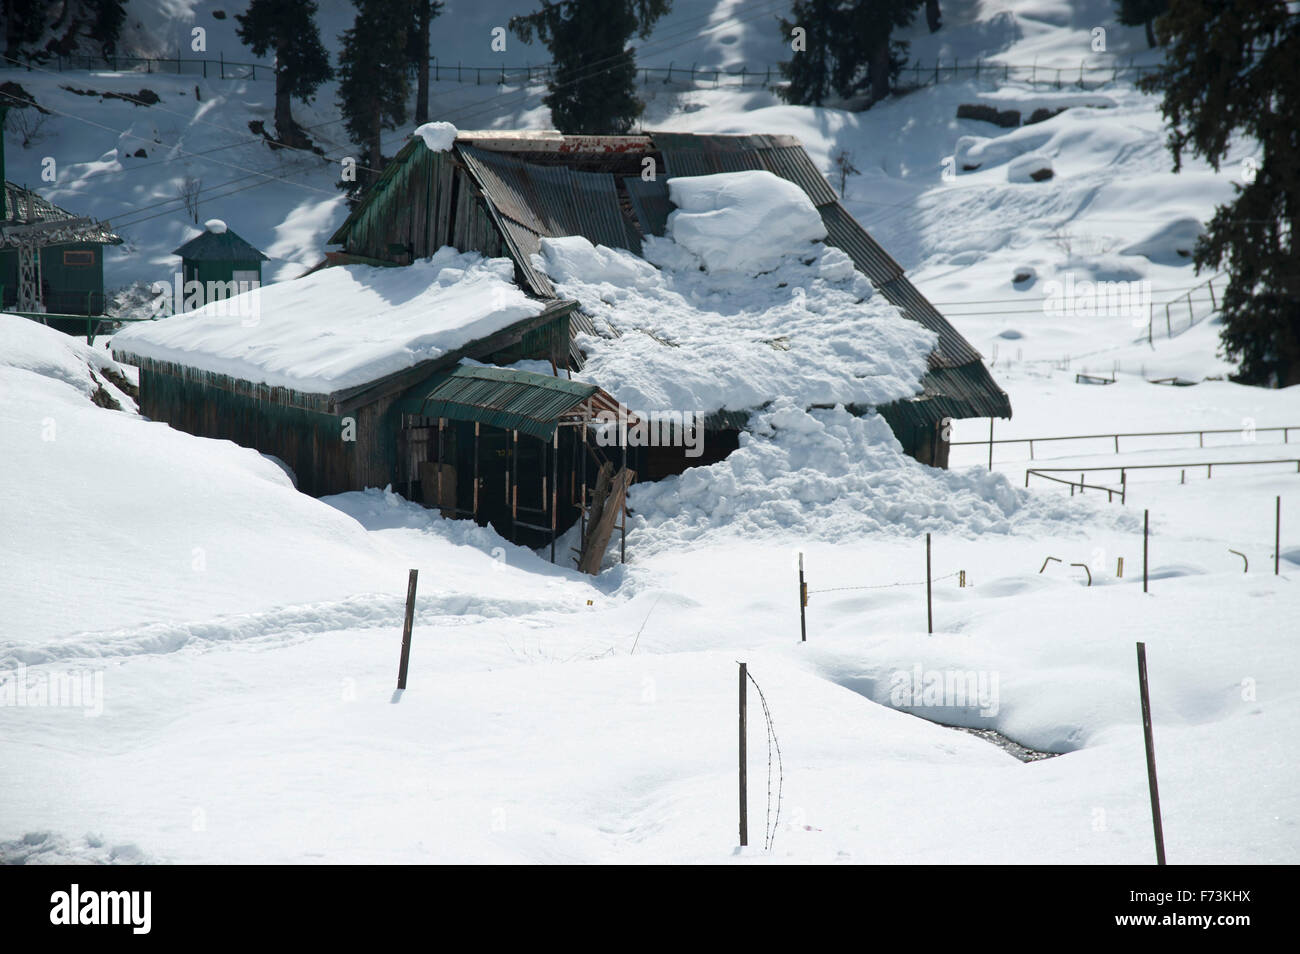 House collapse in snowfall, gulmarg, kashmir, india, asia - Stock Image